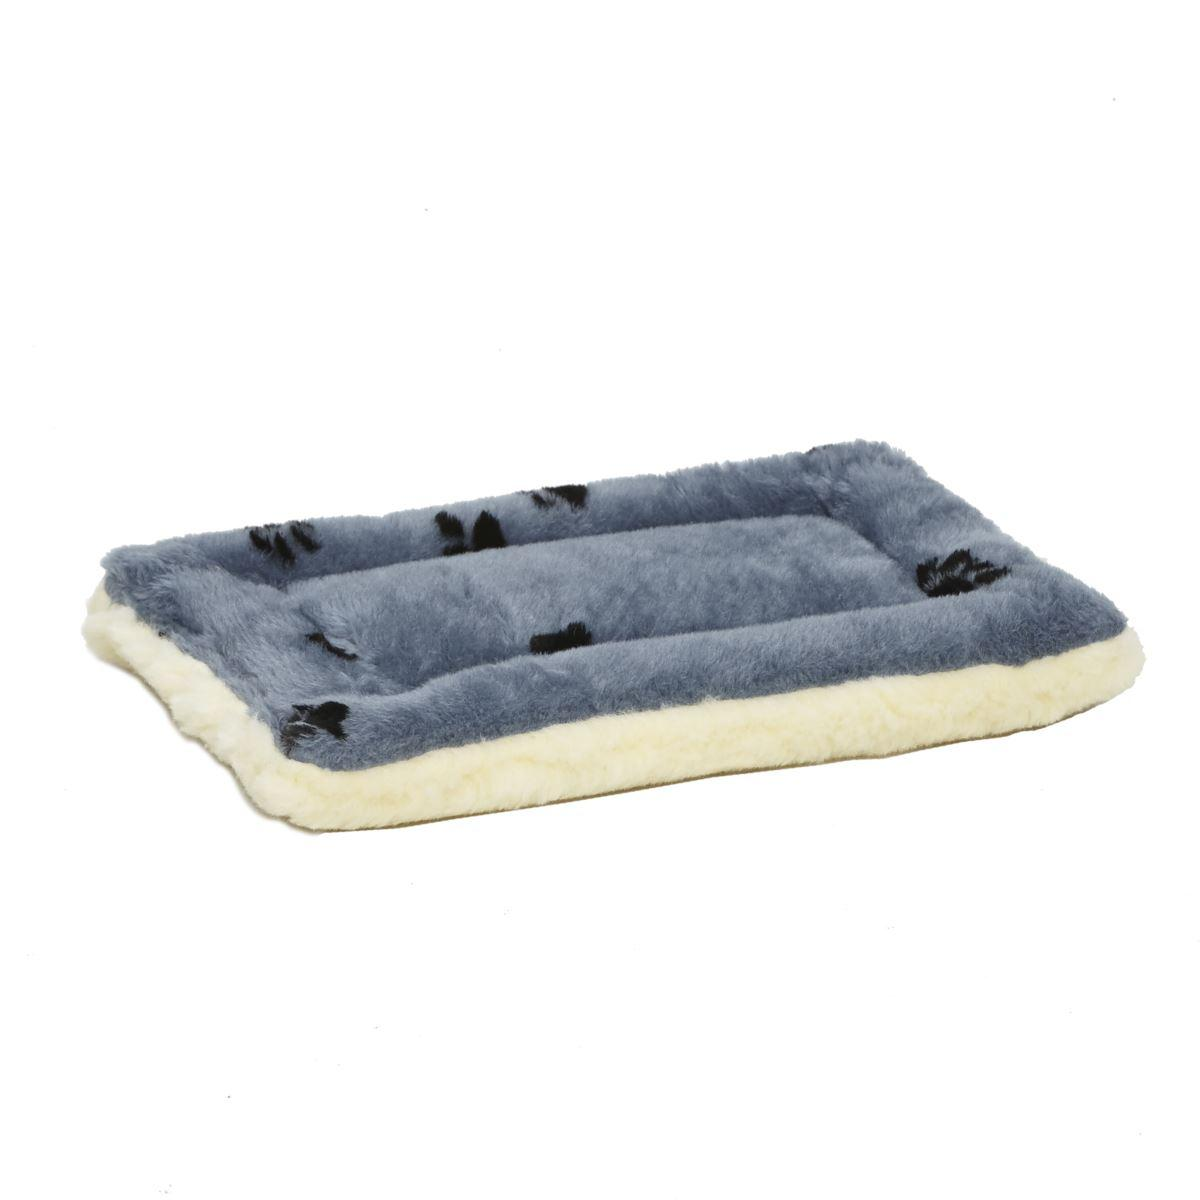 MidWest QuietTime Reversible Fleece Pet Bed, Blue Paw Print, 18-in